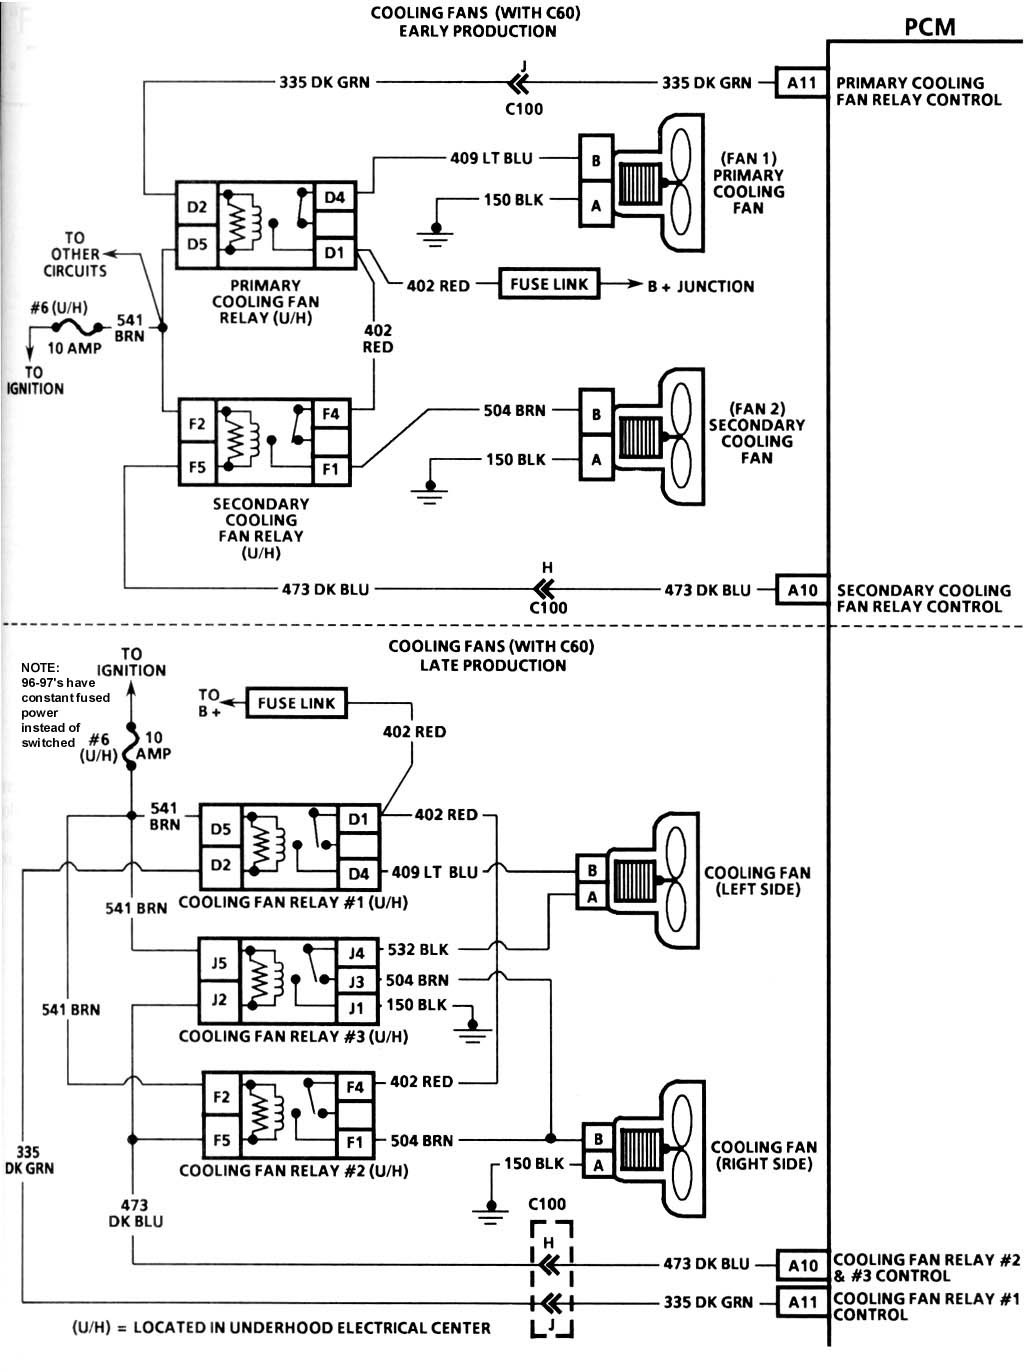 C4 and camaro sensor and relay switch locations and info